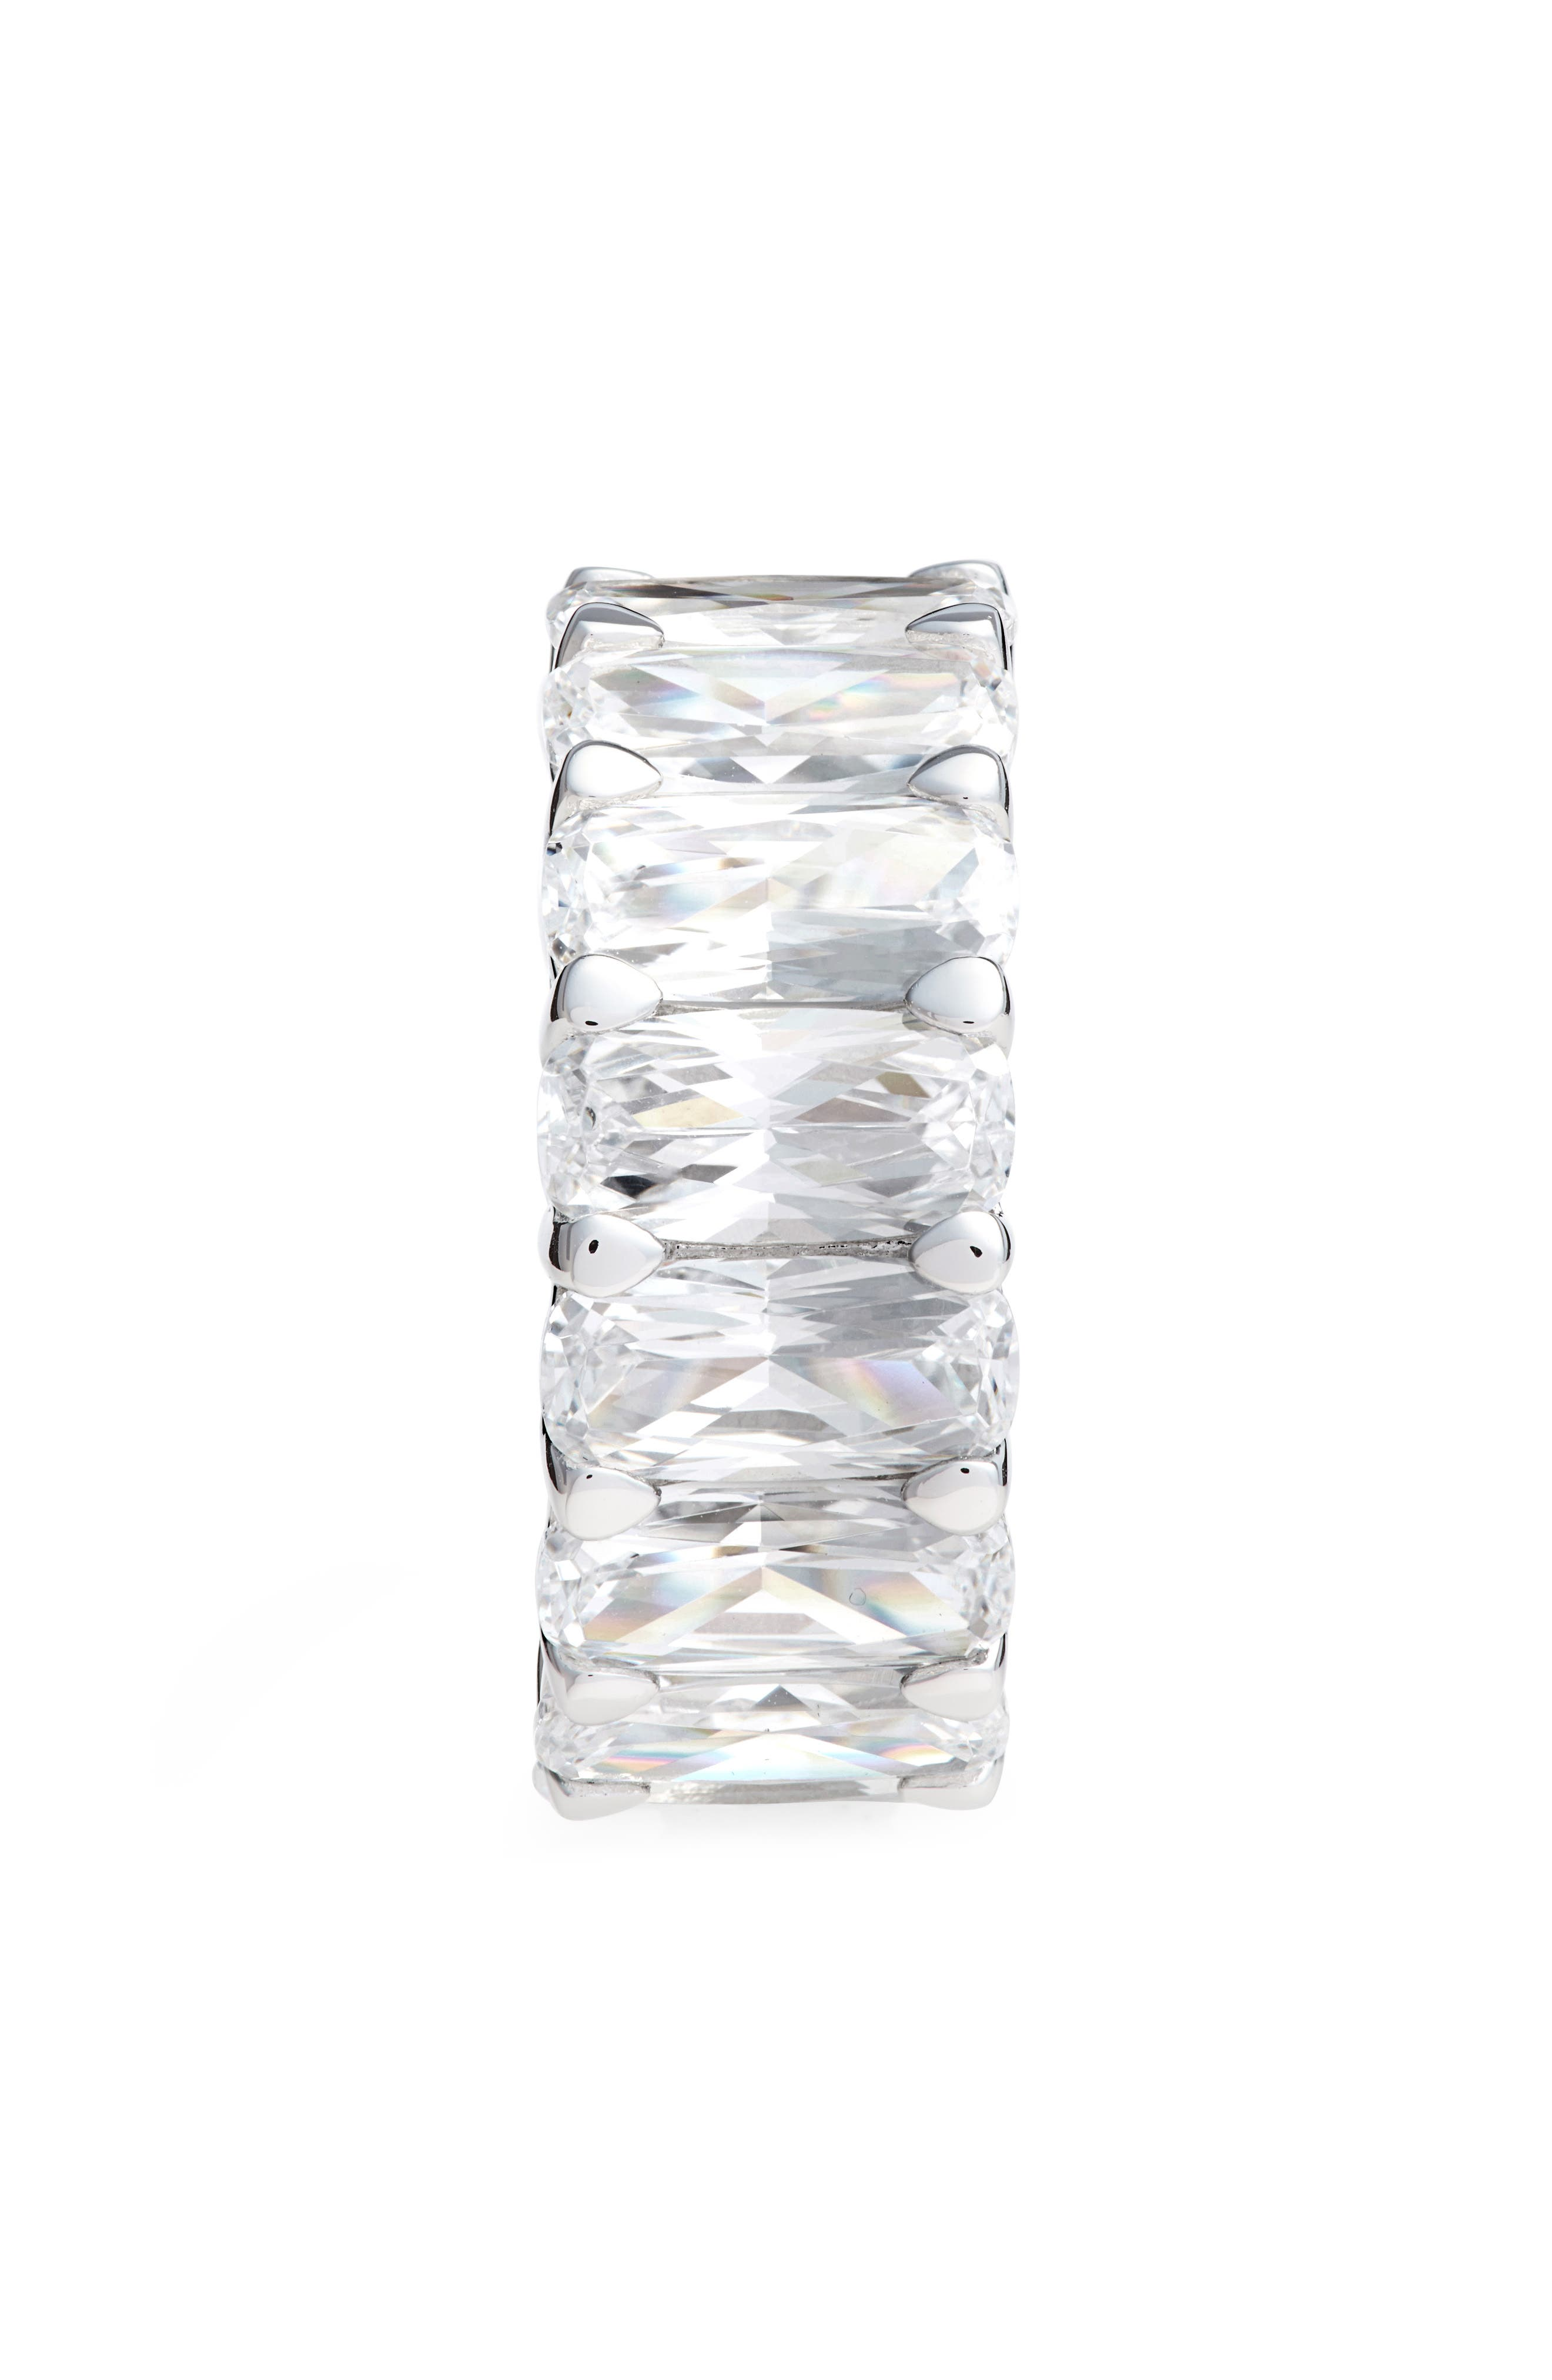 Oversized Eternity Band,                             Alternate thumbnail 2, color,                             SILVER/ CLEAR